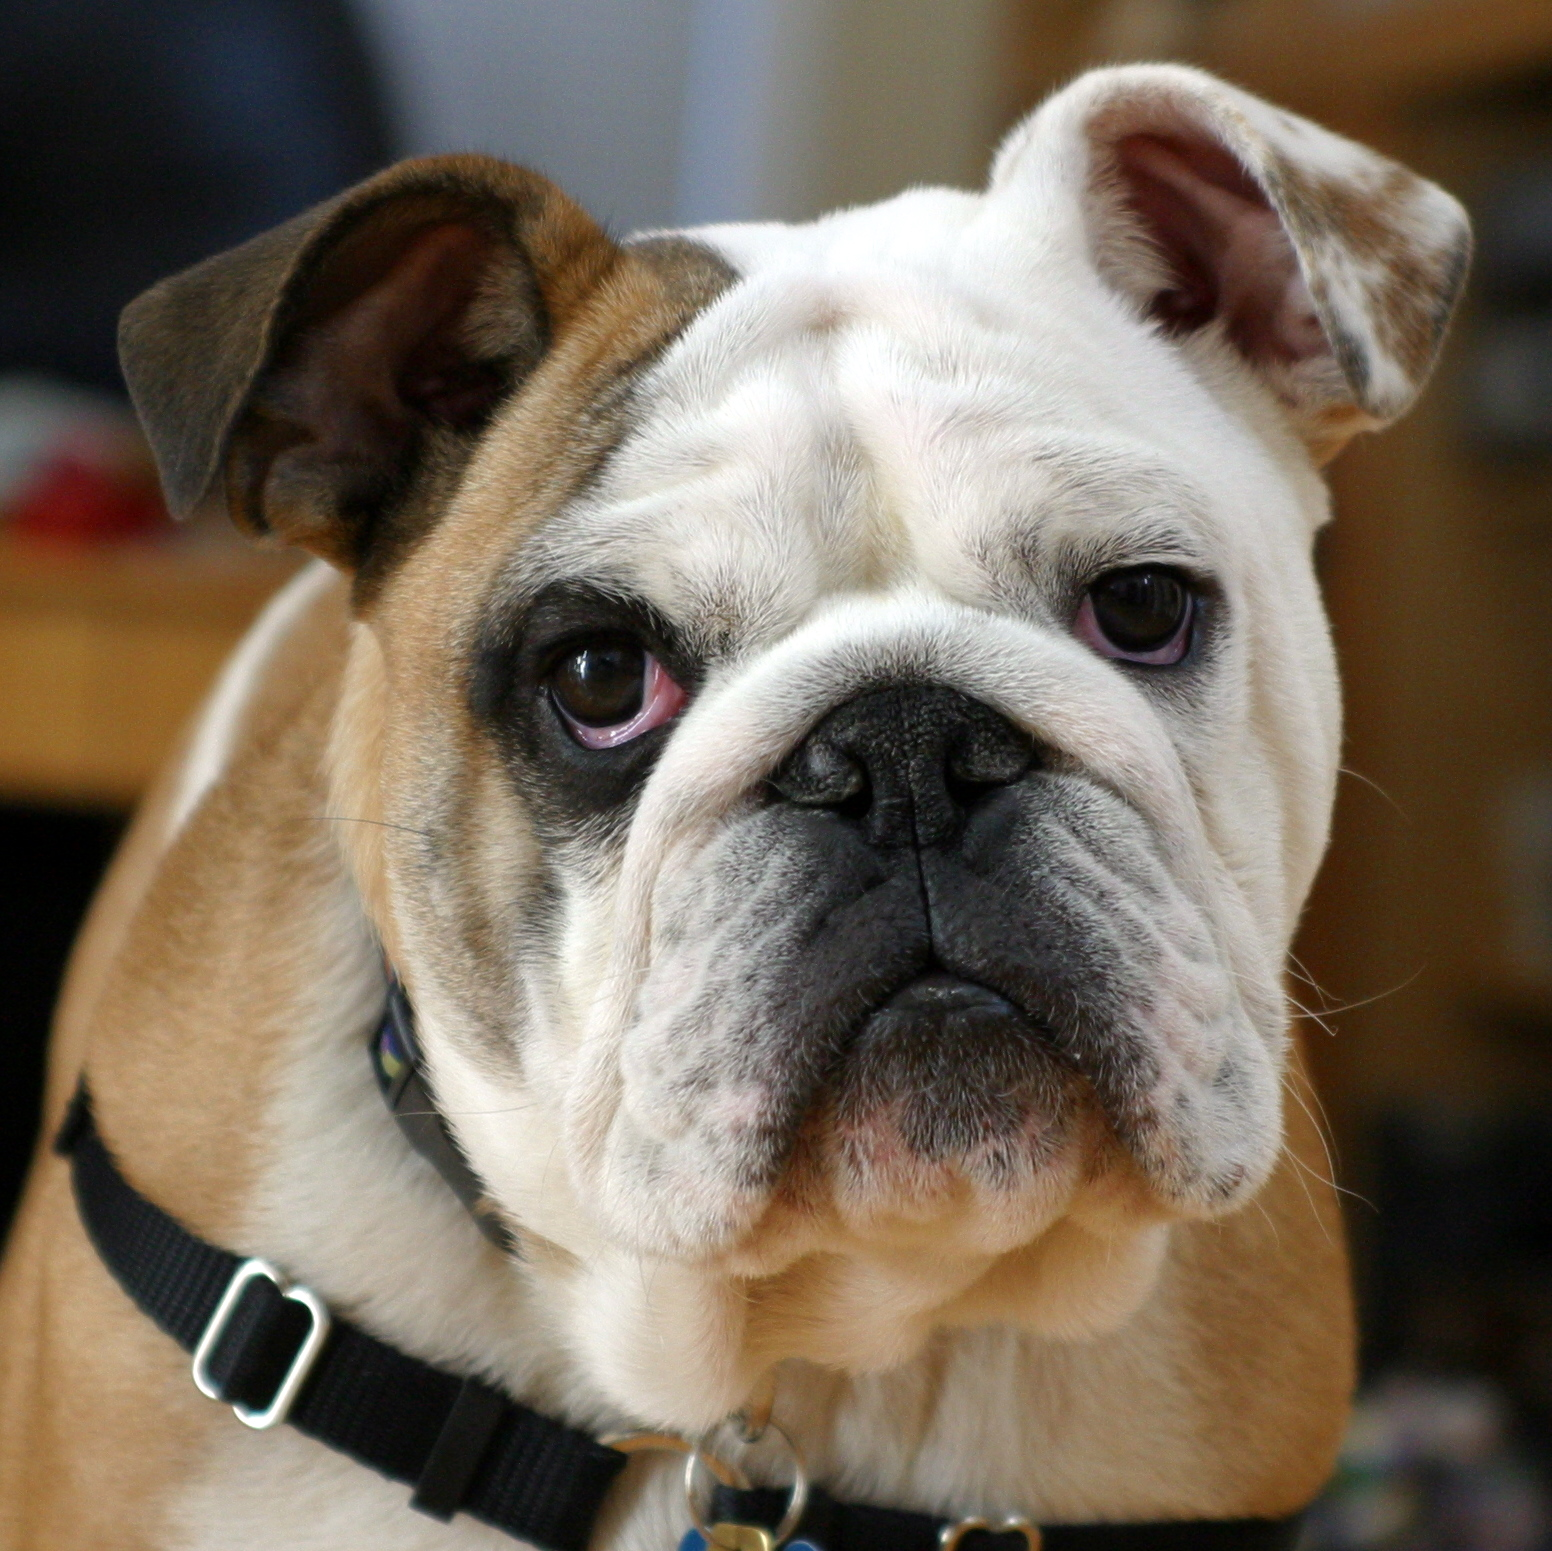 Bulldog - 01 photo